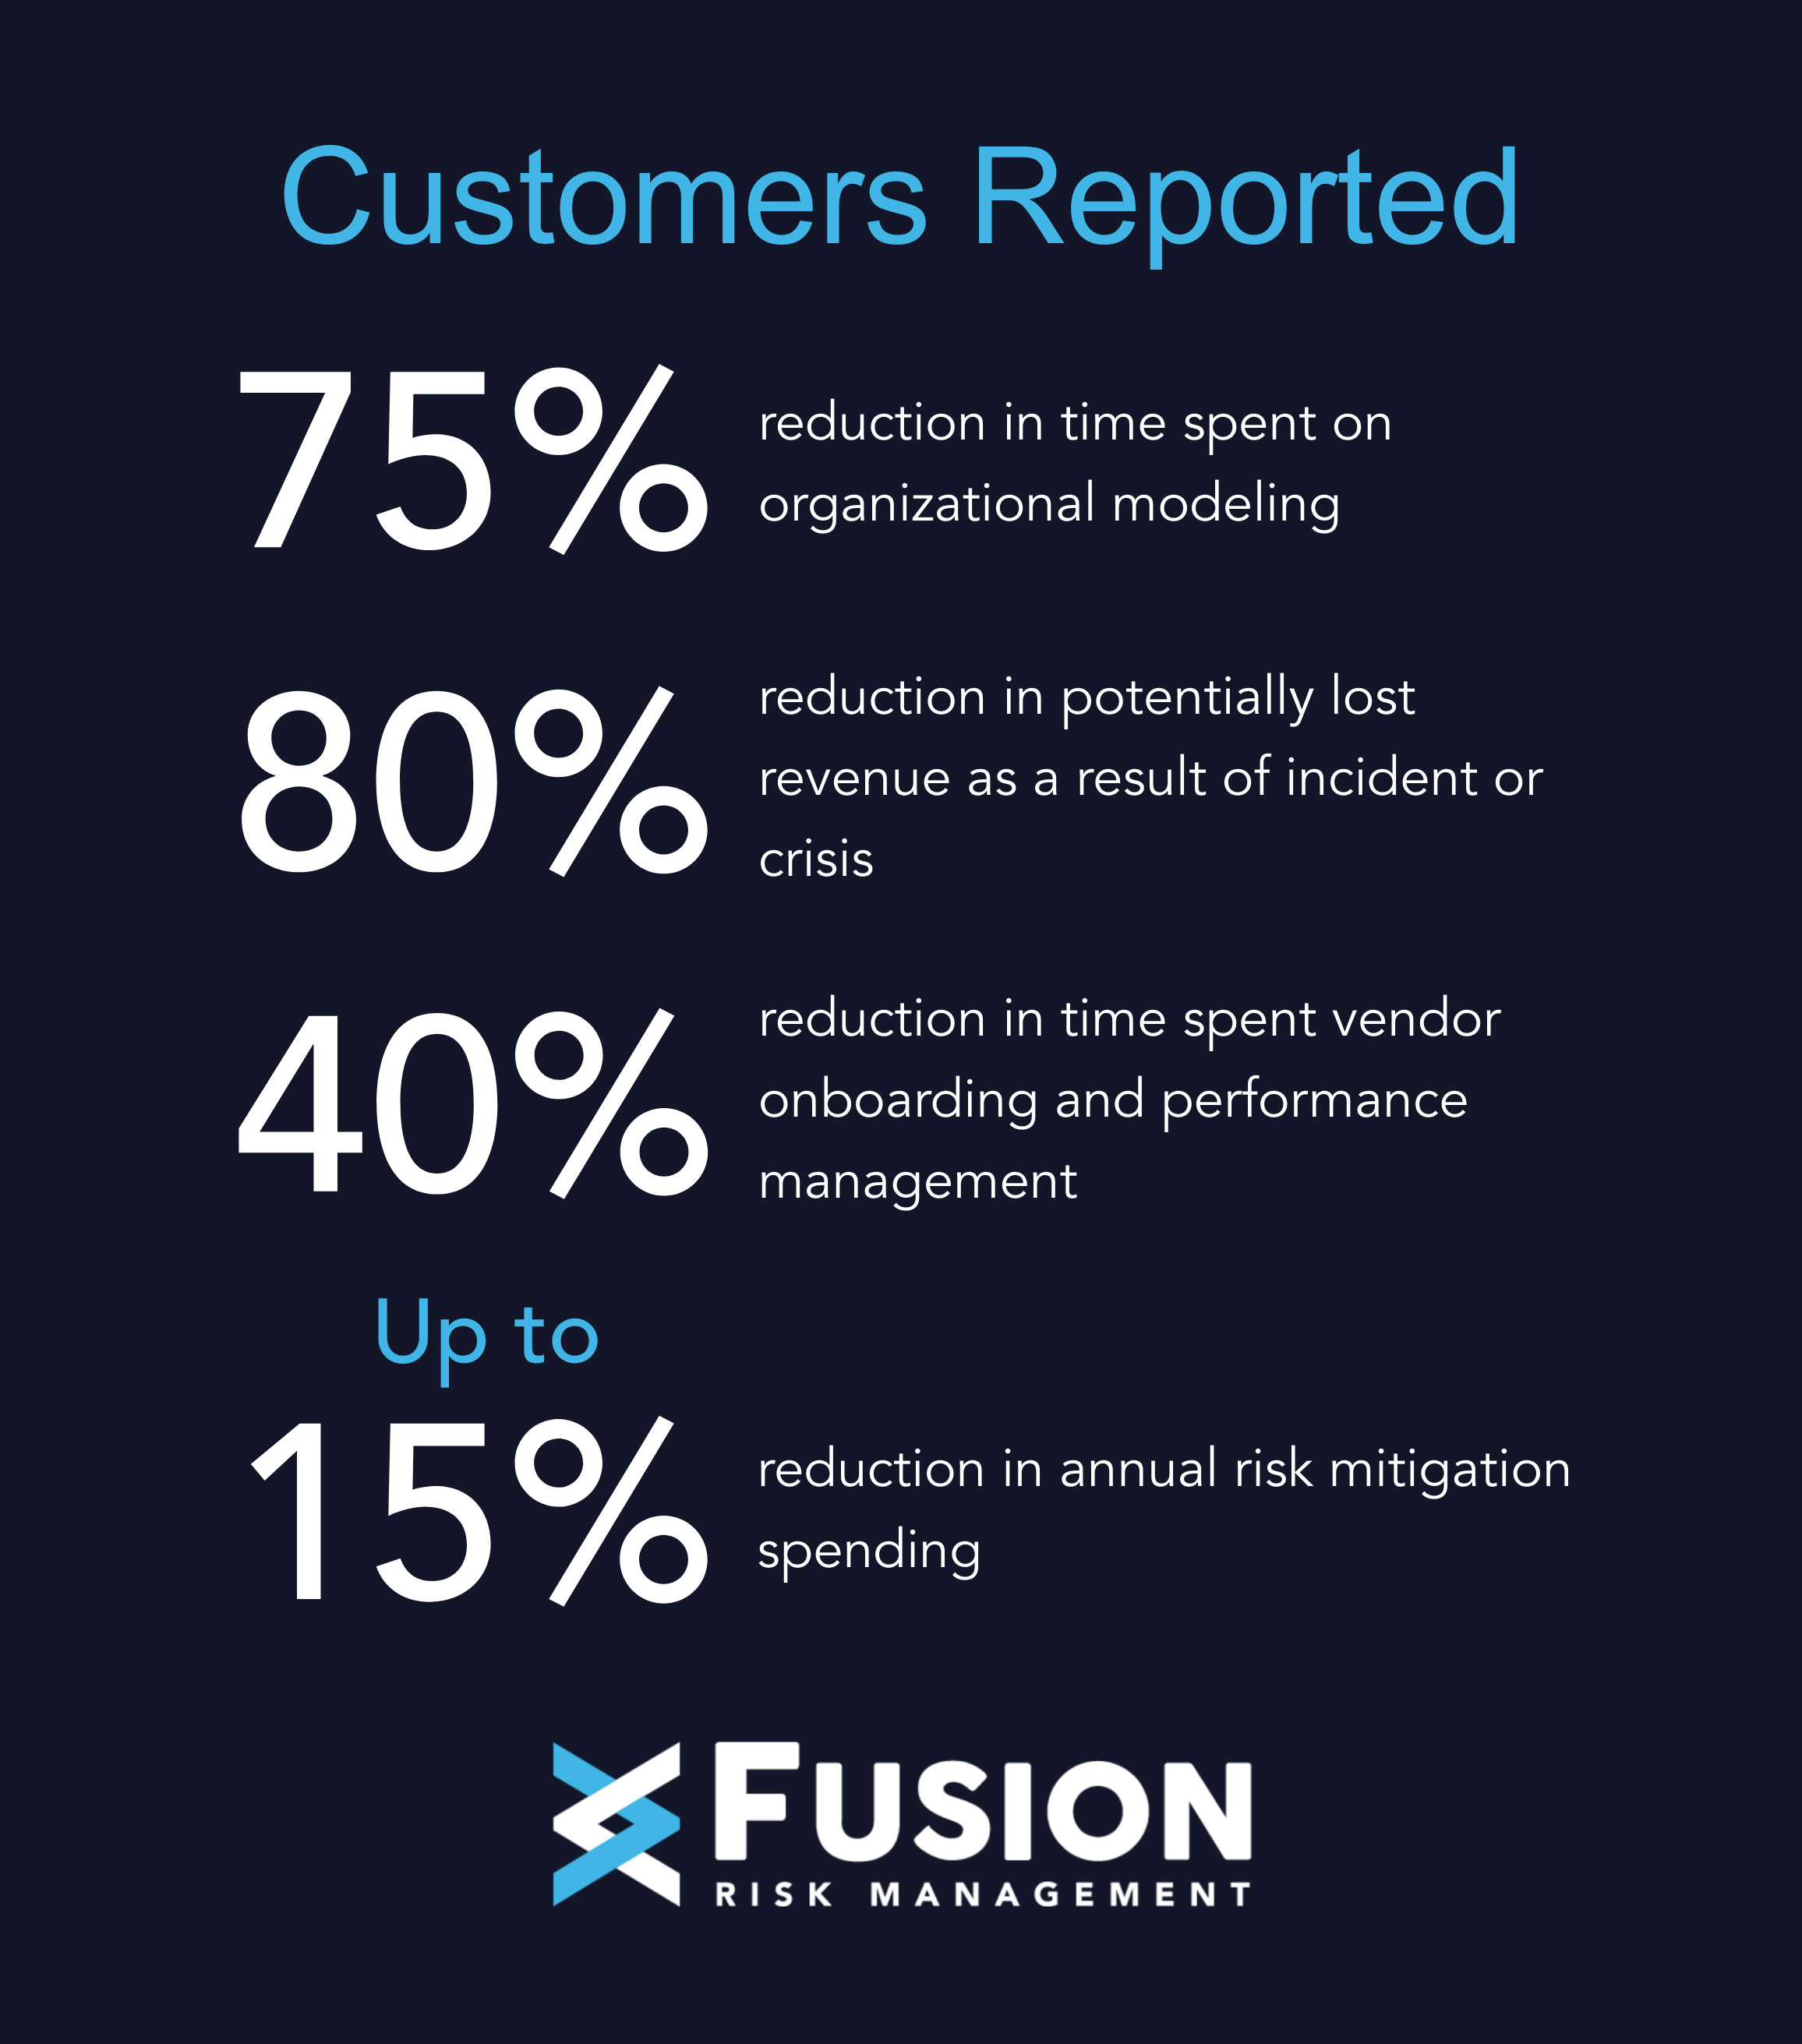 Hobson ROI Fusion Customer Report